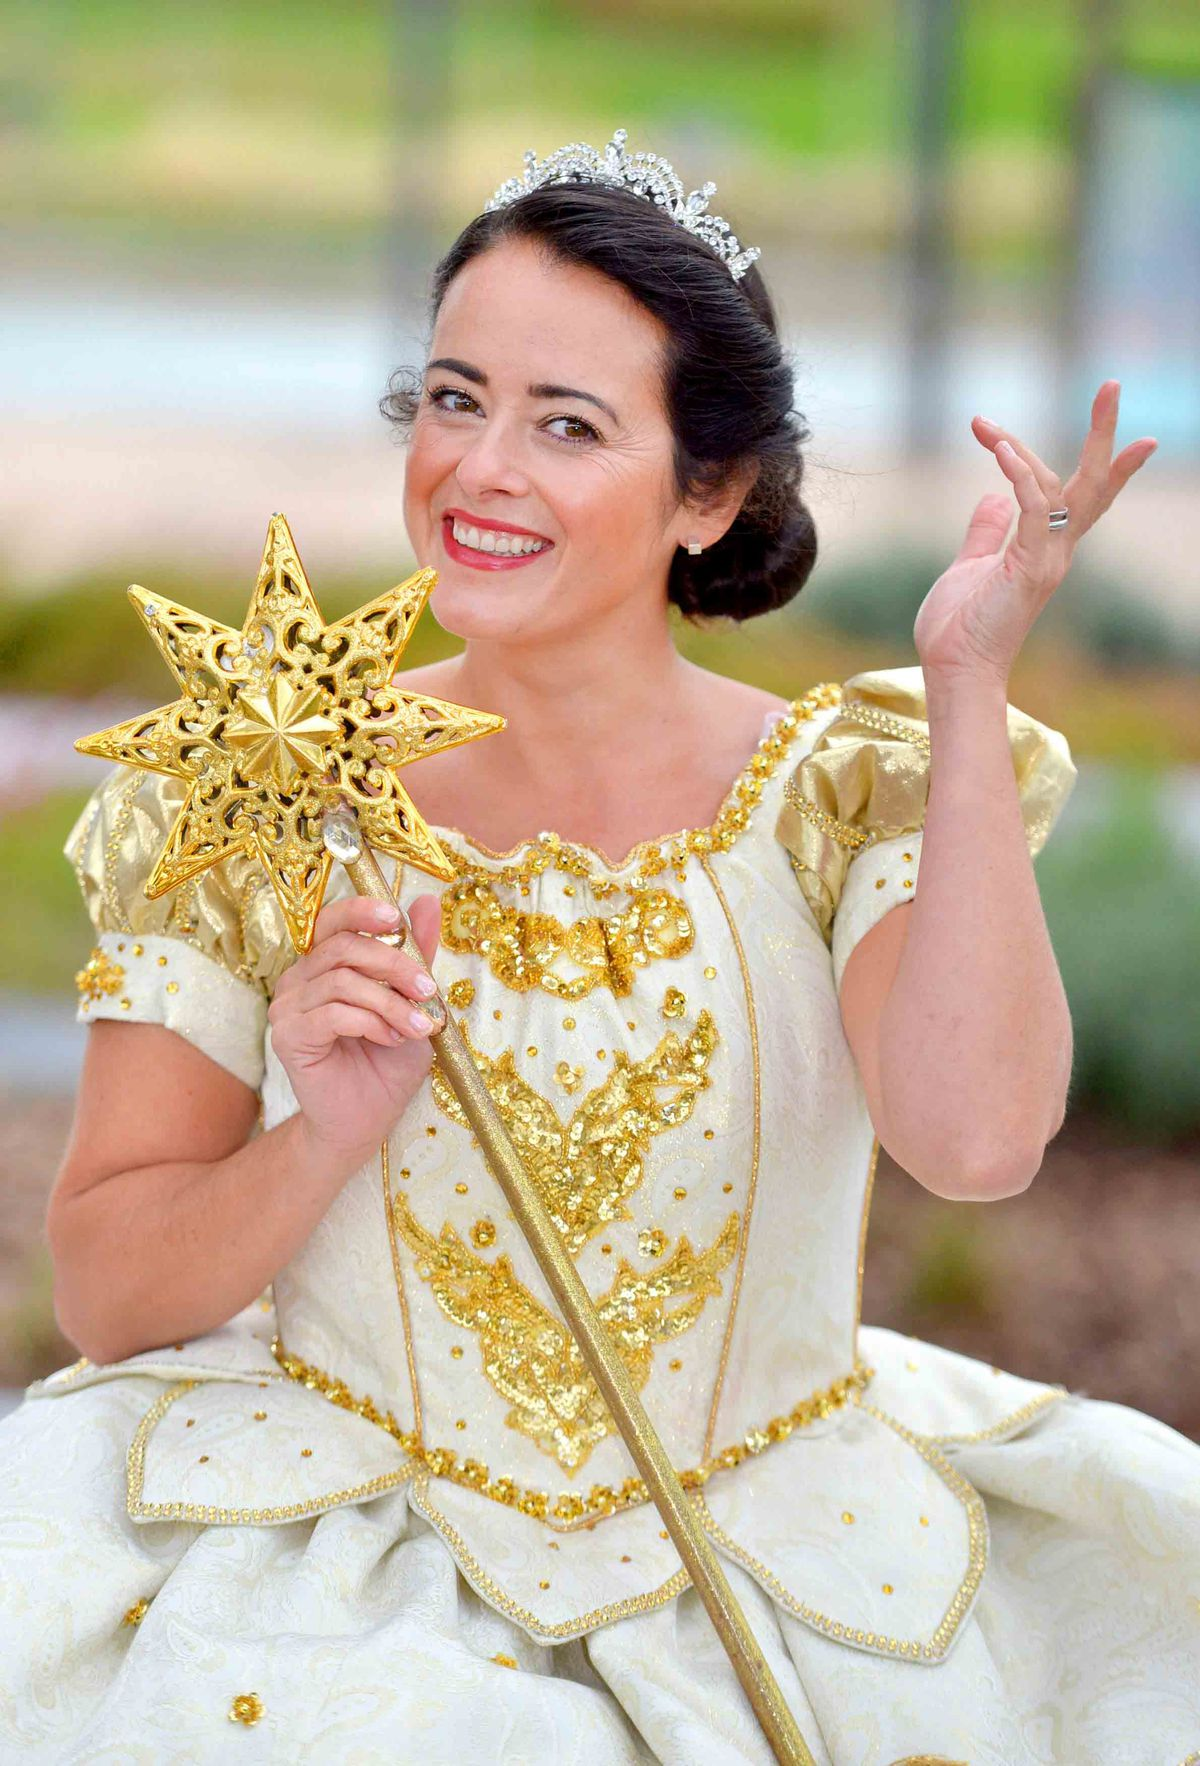 Anna as the Fairy Godmother in Cinderella